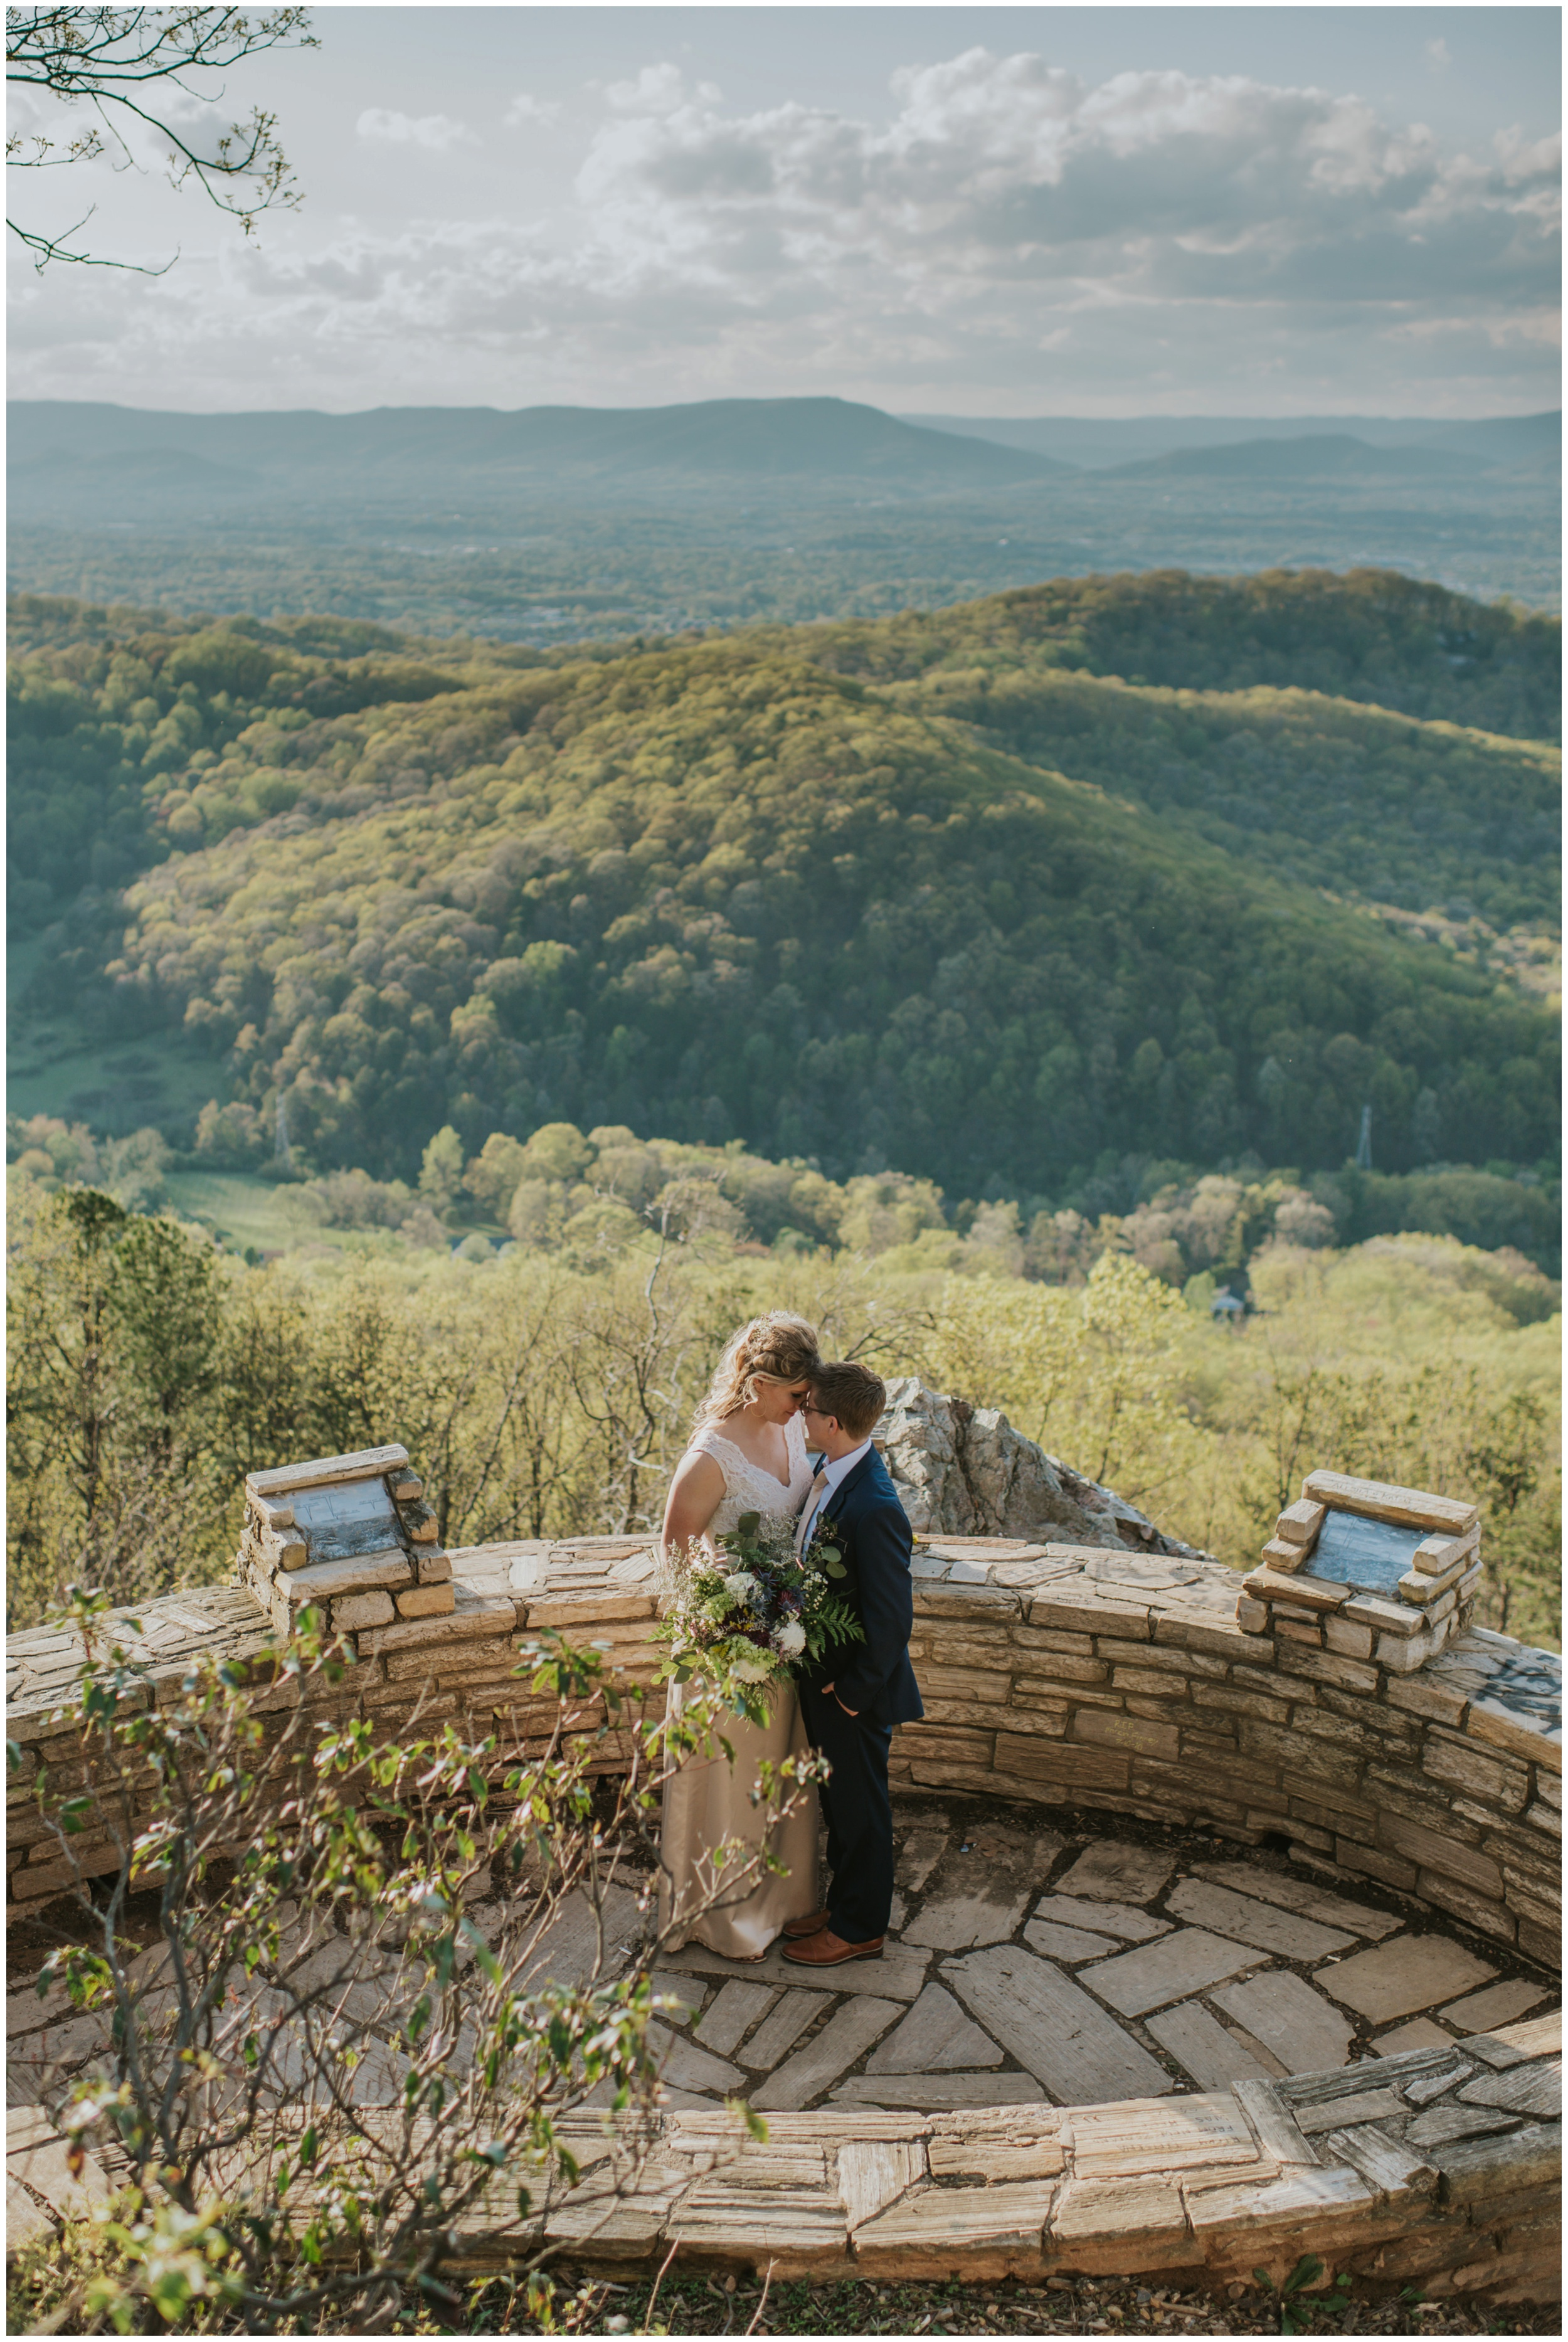 Roanoke Mountain Overlook Elopement  | www.riversandroadsphotography.com